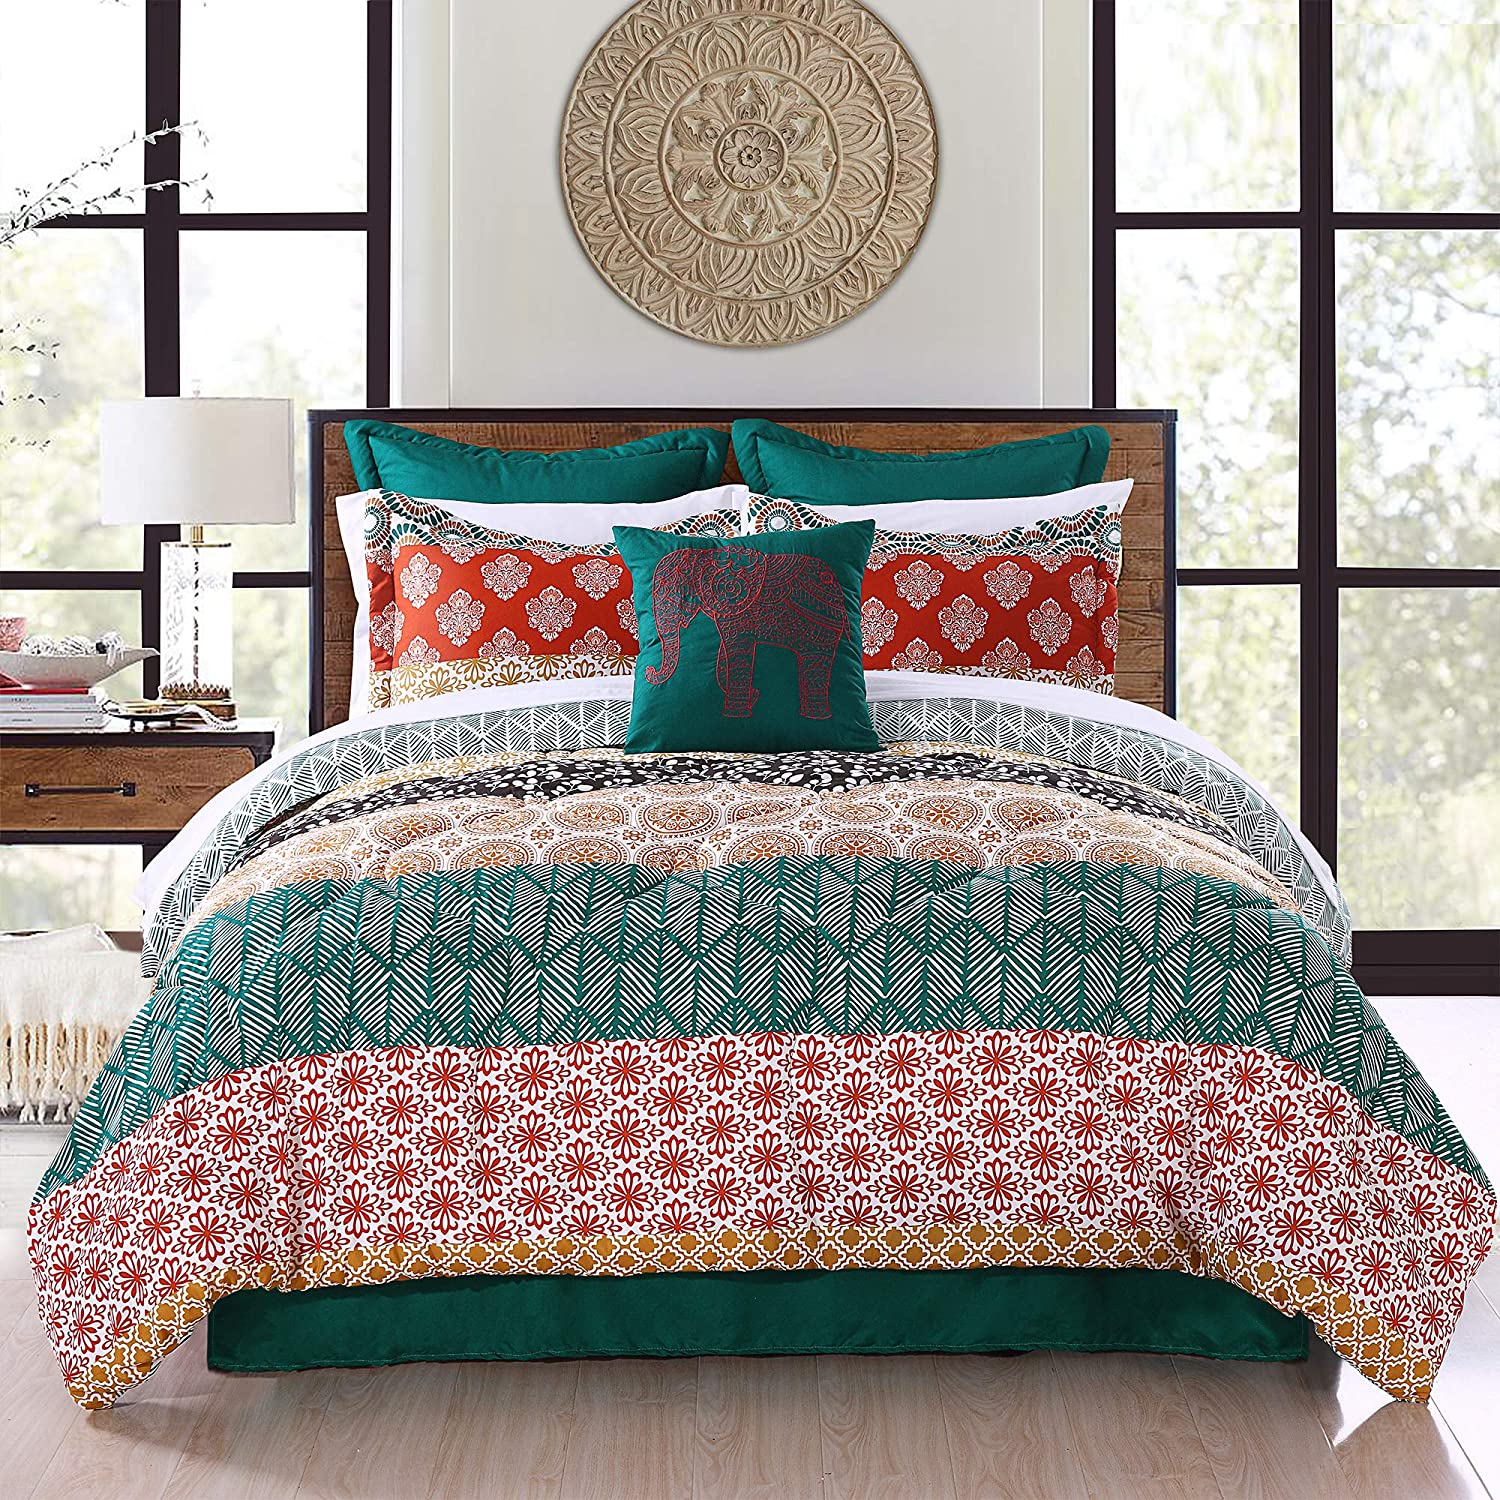 Lush Decor Bohemian Stripe Comforter-Colorful Pattern Boho Style Reversible 7 Piece Bedding Set-King-Turquoise and Orange, Turquoise & Orange